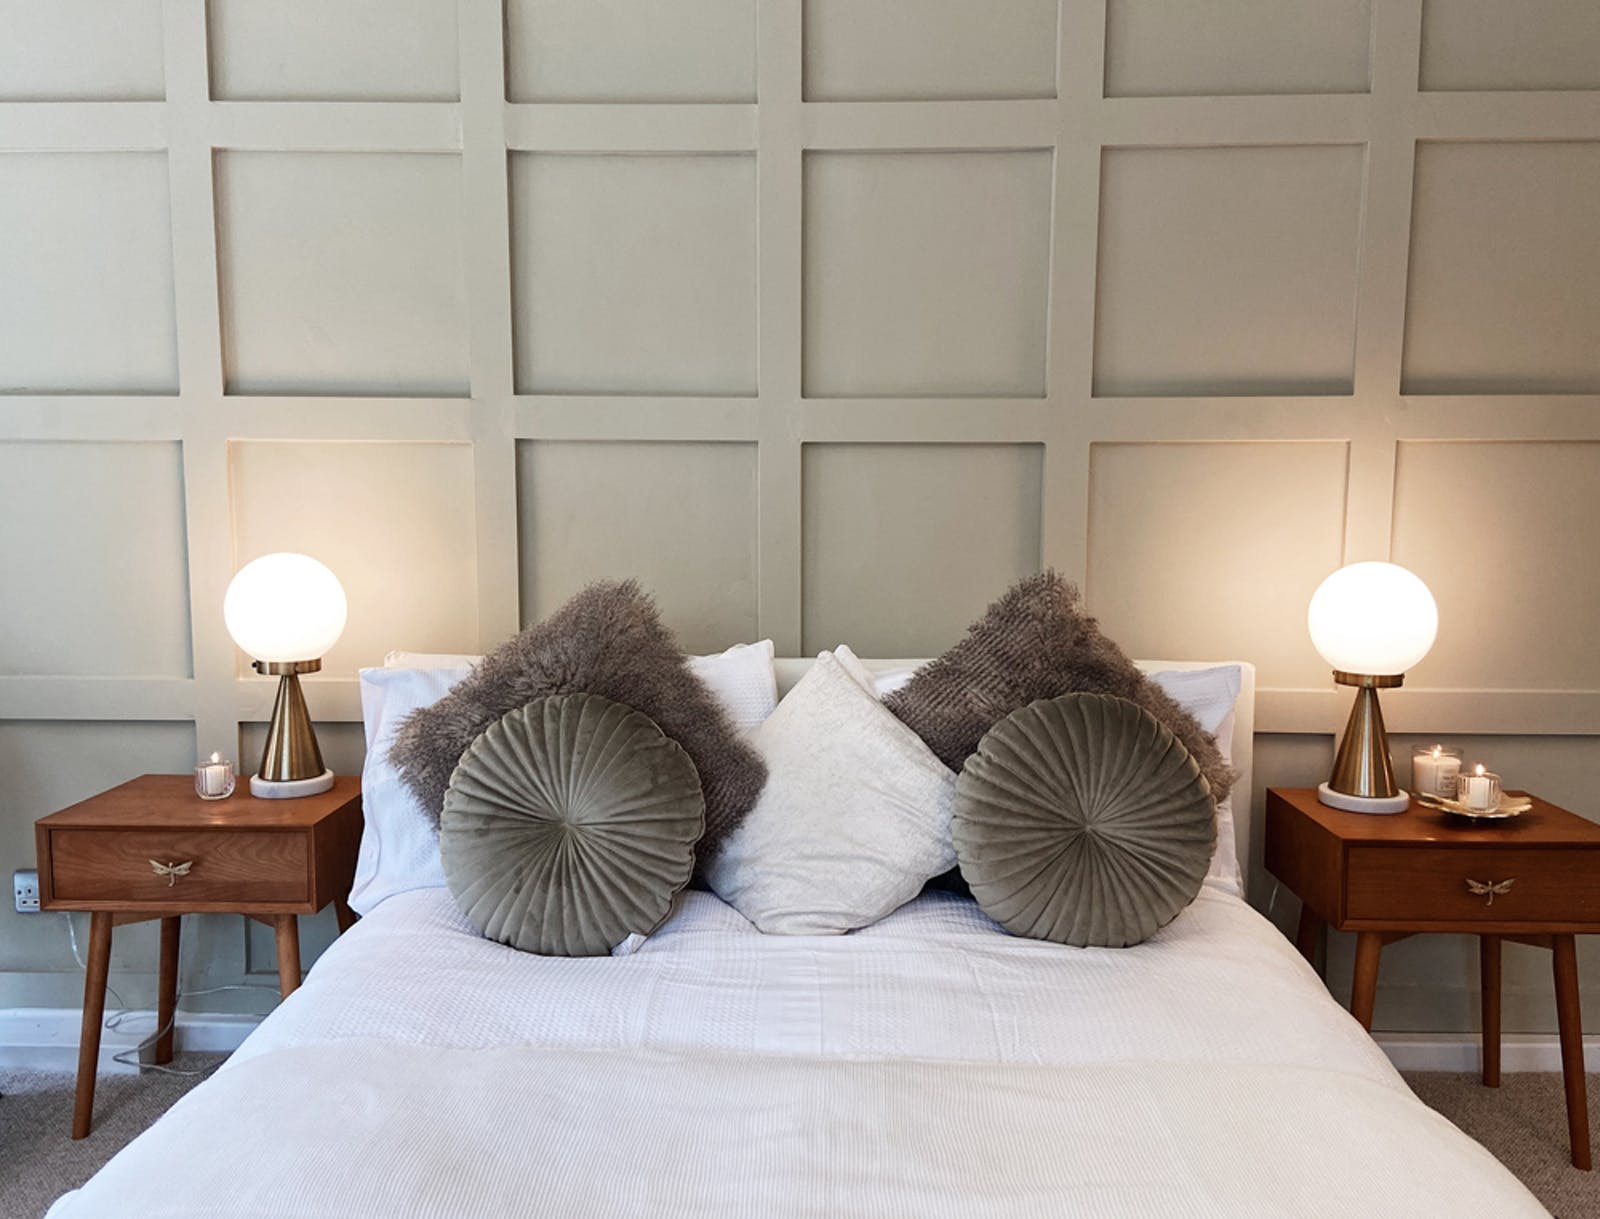 Bedroom wall panelling painted in Lick Greige 01